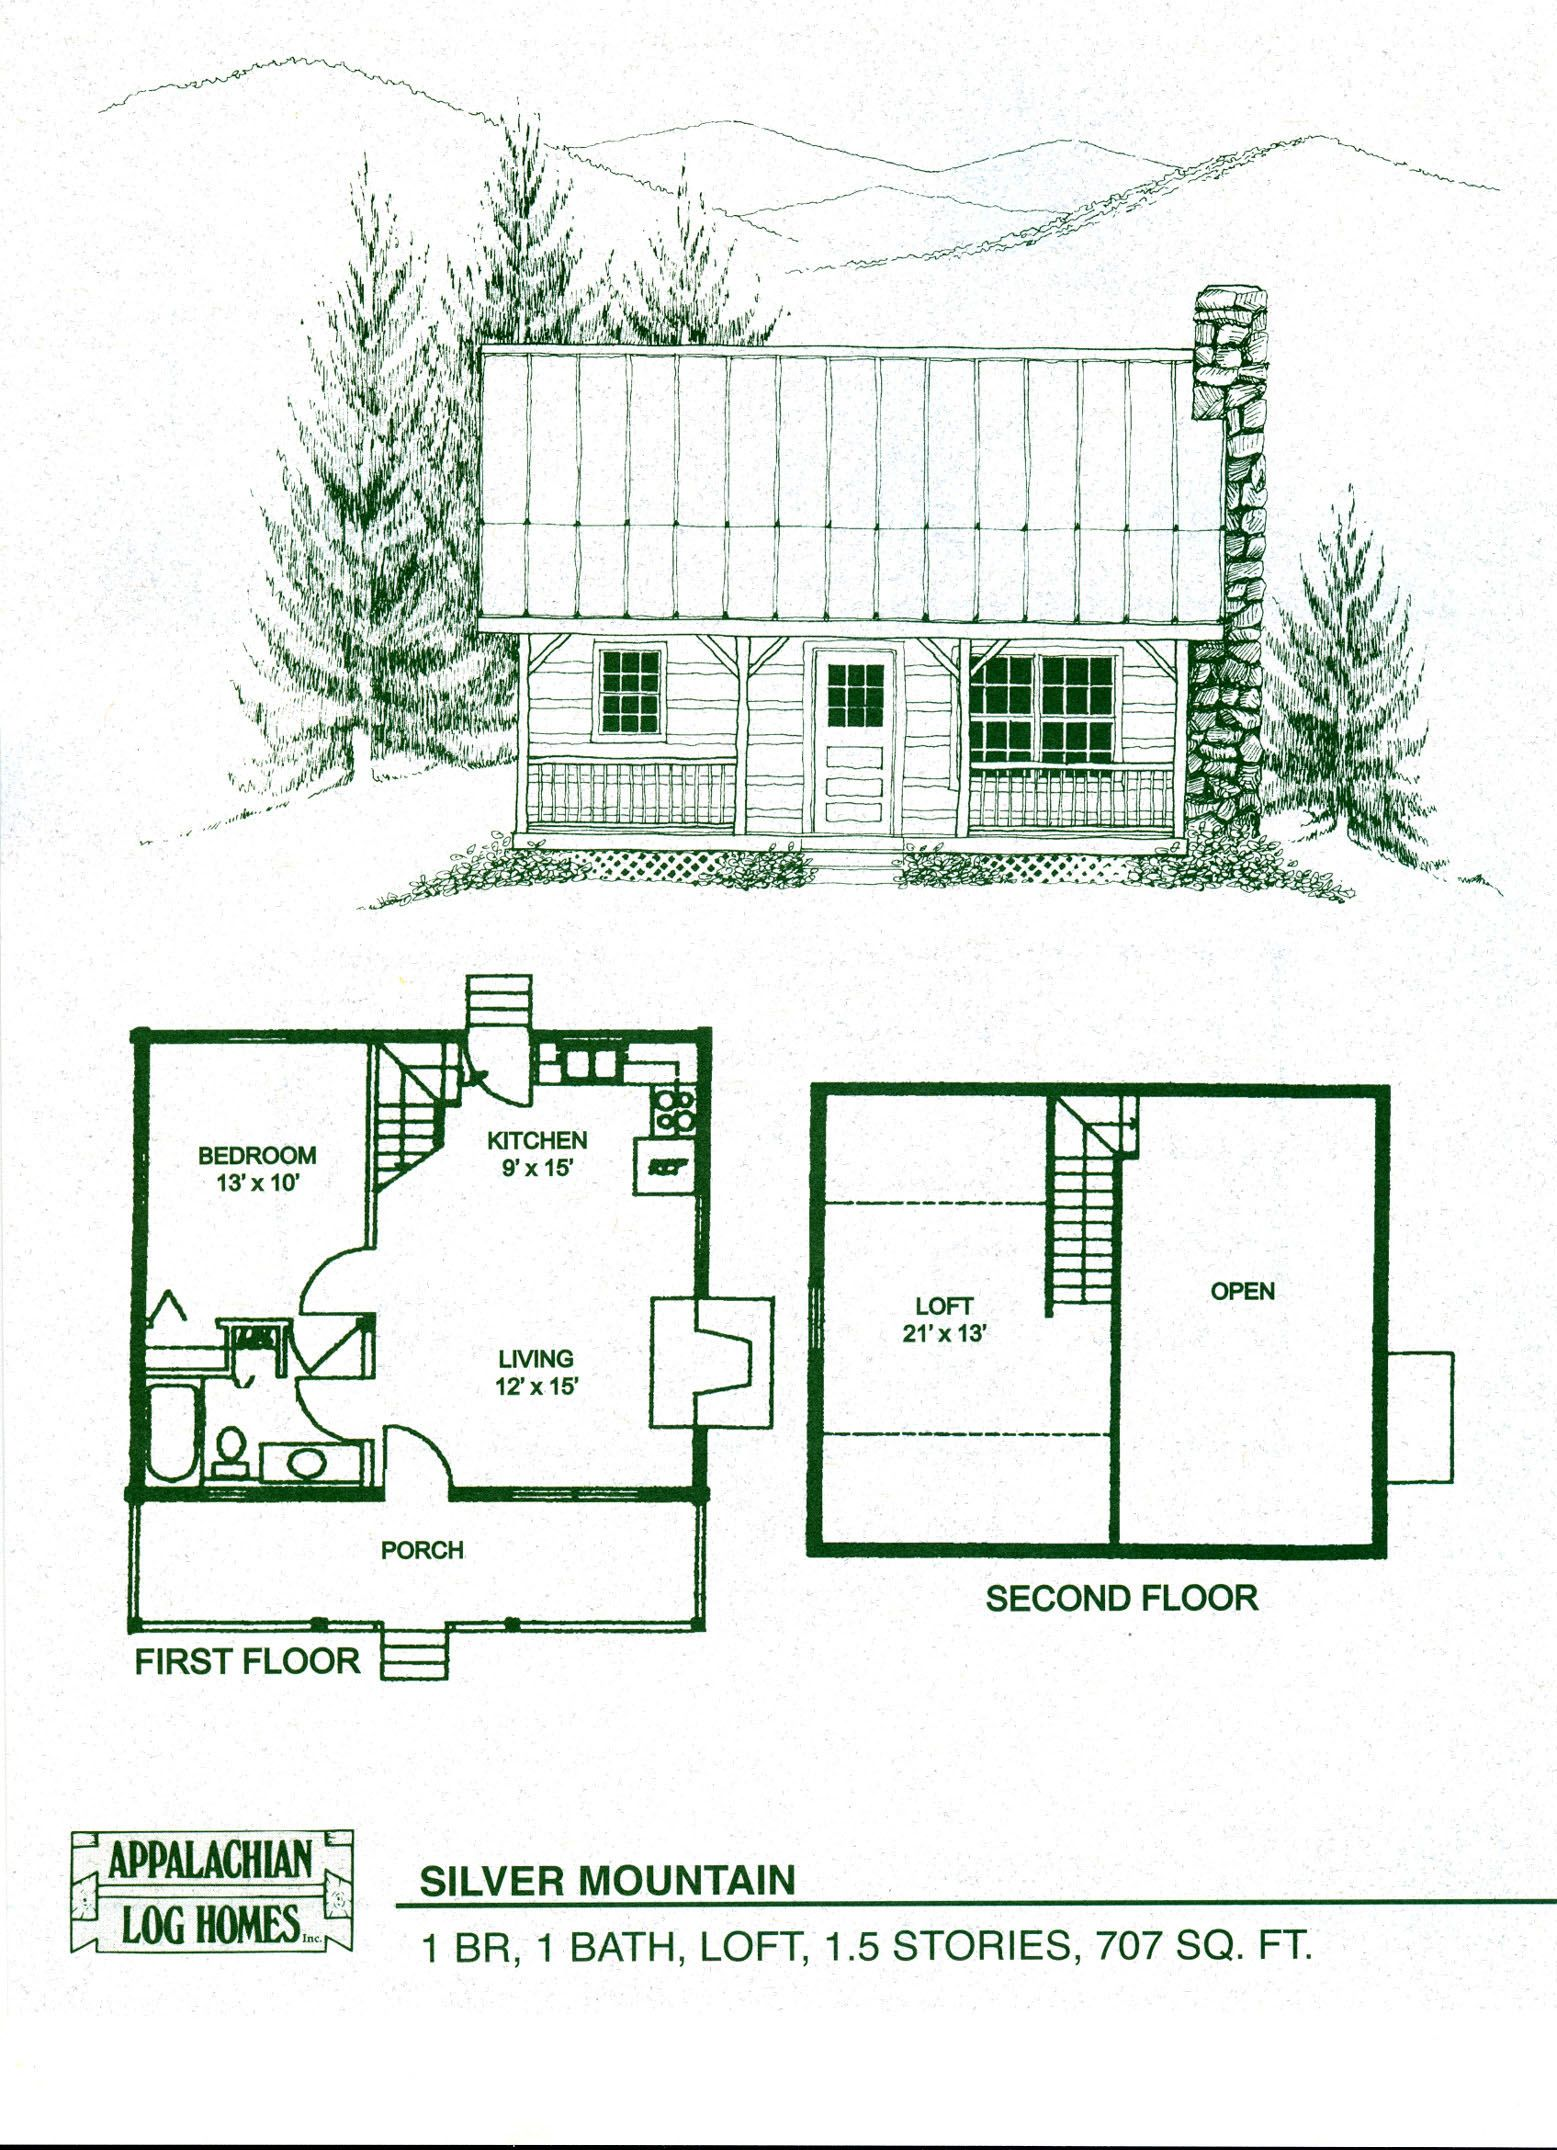 Small Cabin With Loft Floorplans Photos Of The Small Cabin Floor Plans With Loft Small Cabin Plans House Plan With Loft Log Cabin Floor Plans